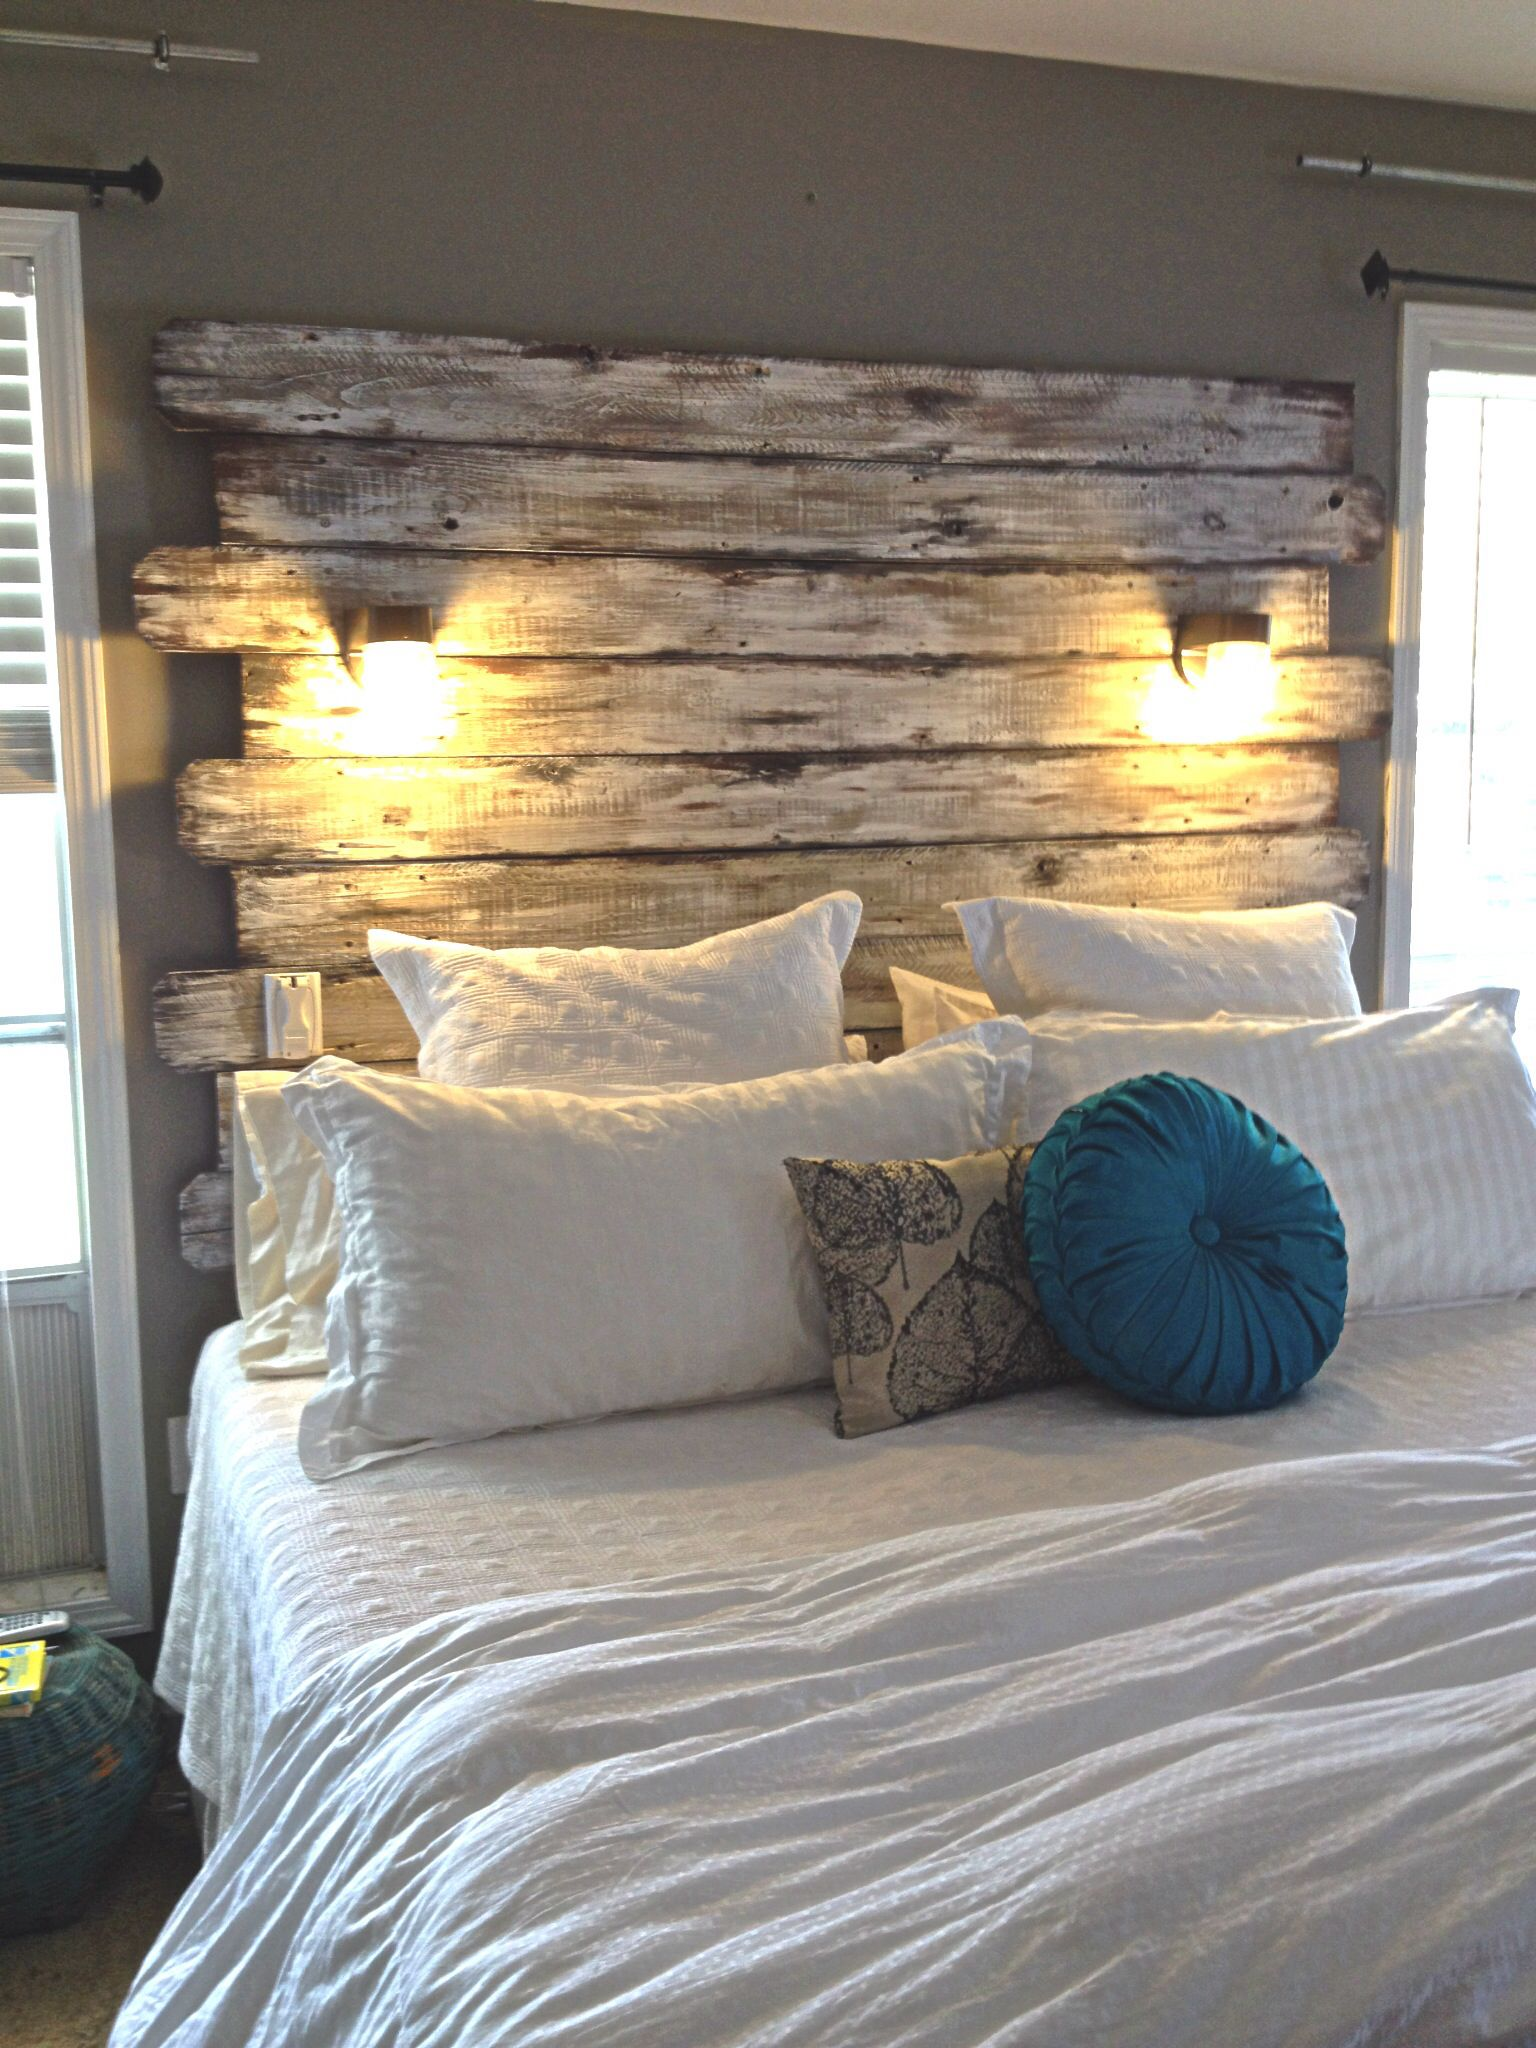 Headboard dream house pinterest acrylics lights and bedrooms